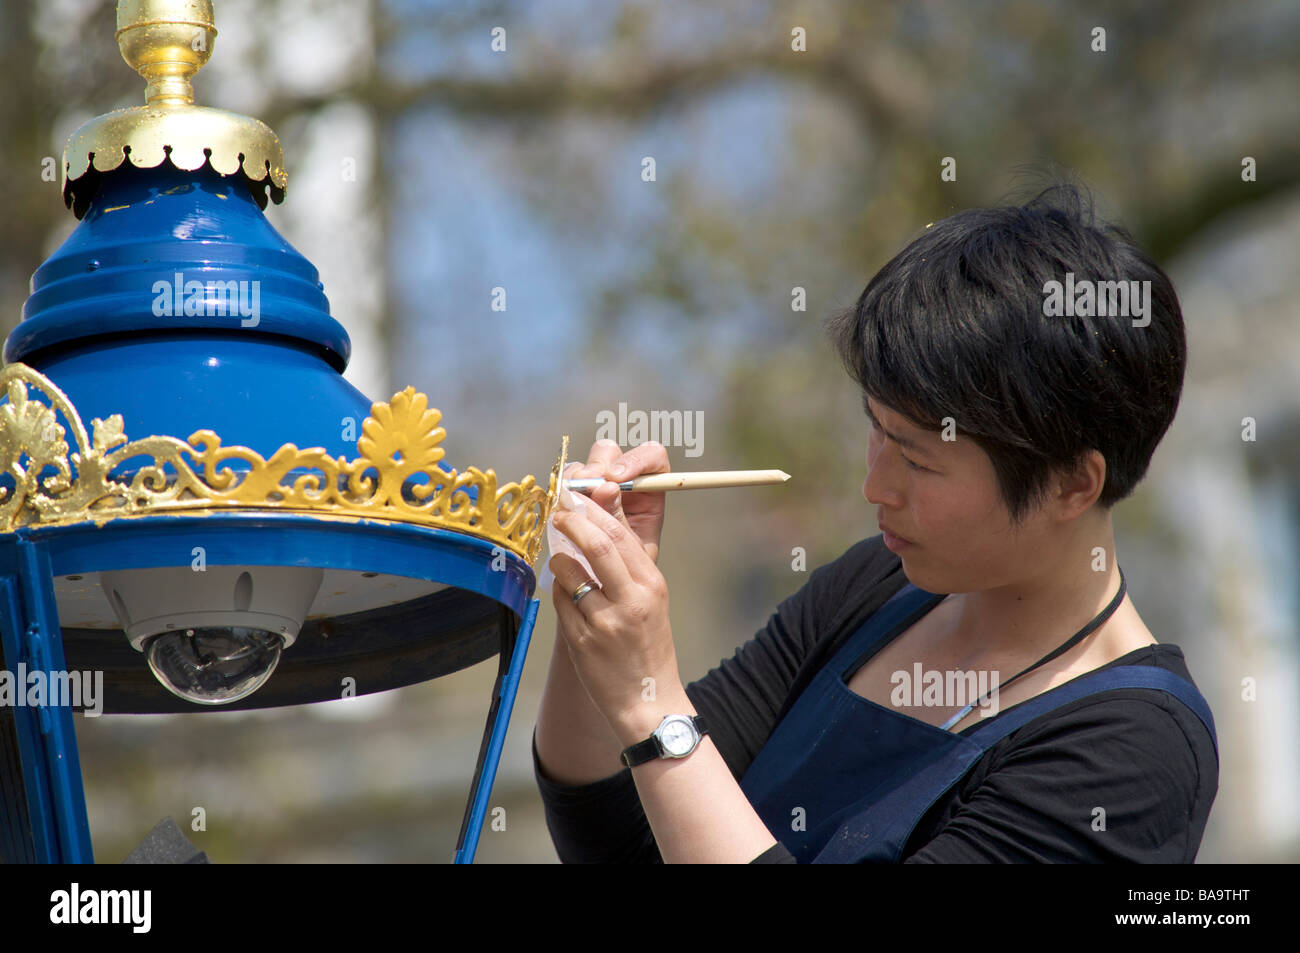 Applying gold leaf to lamposts close to the Tower of London, London, England - Stock Image